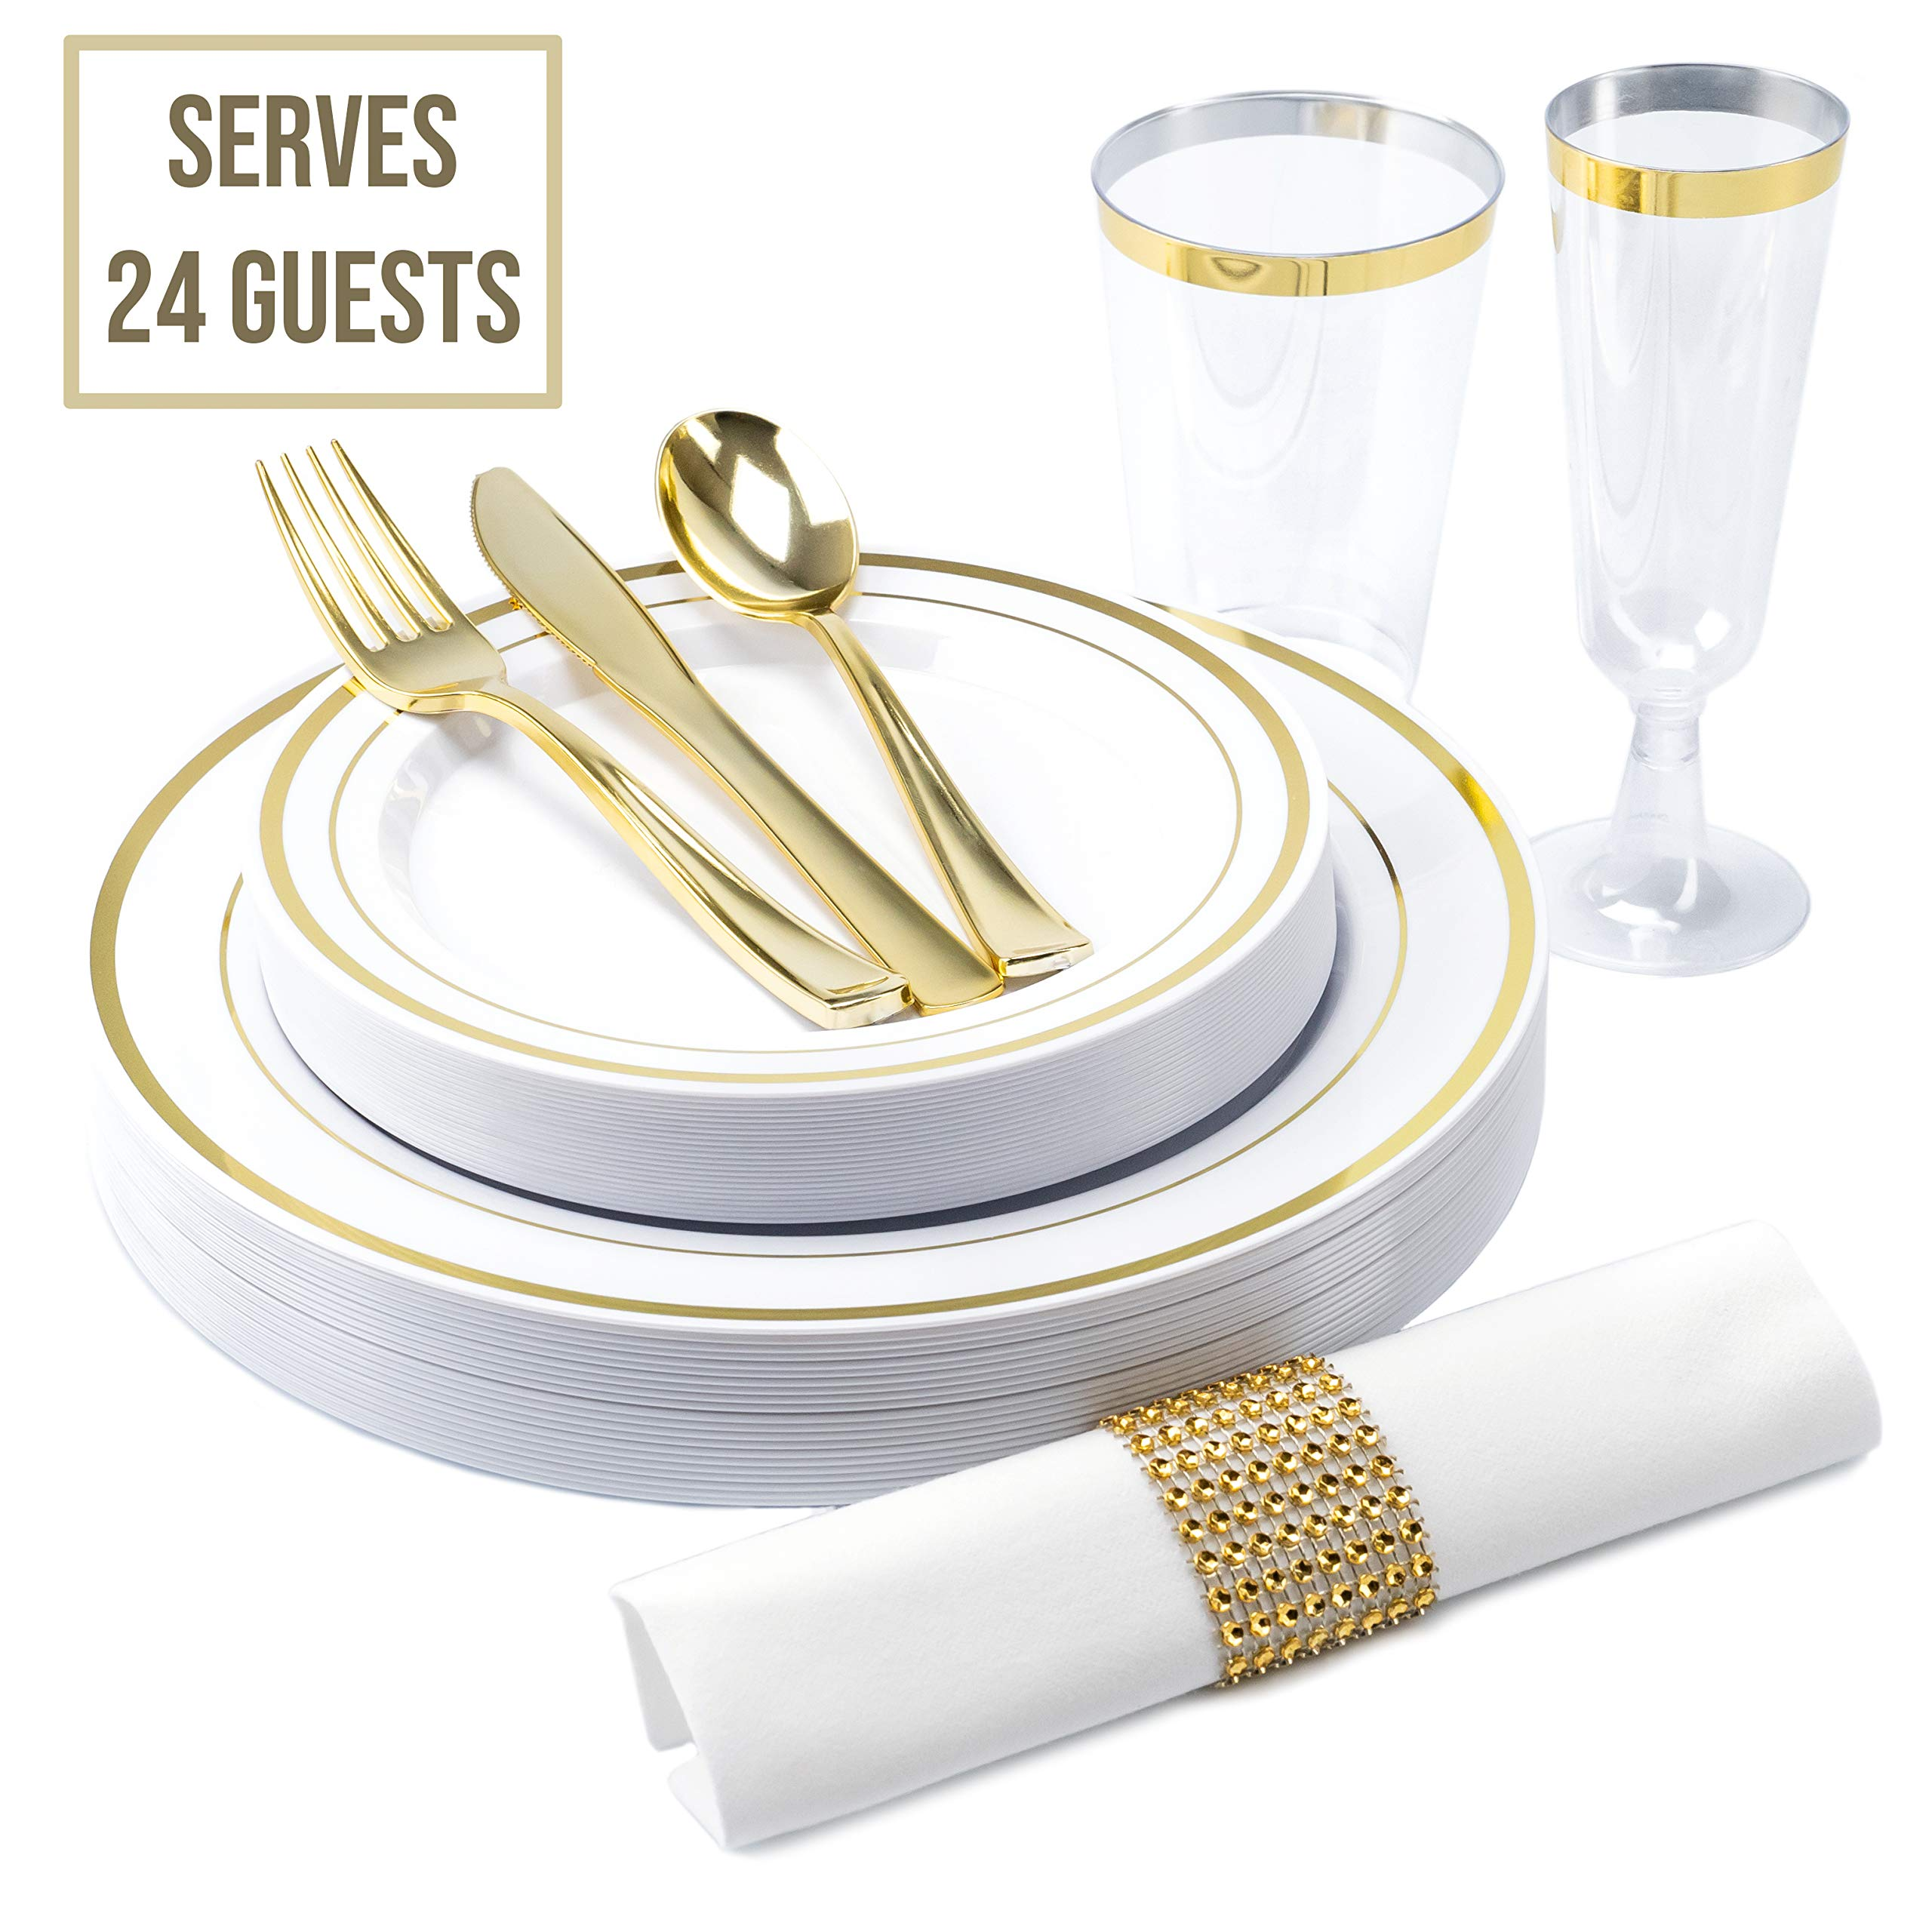 Disposable Fancy Dinnerware Set 216pcs - TrueLook Tableware! 24 Cups, Flutes, Napkins, Napkin Rings and Gold Plastic Silverware and 48 White and Gold Plastic Party Plates for  Elegant Dinner Occasions by Aynat Fun